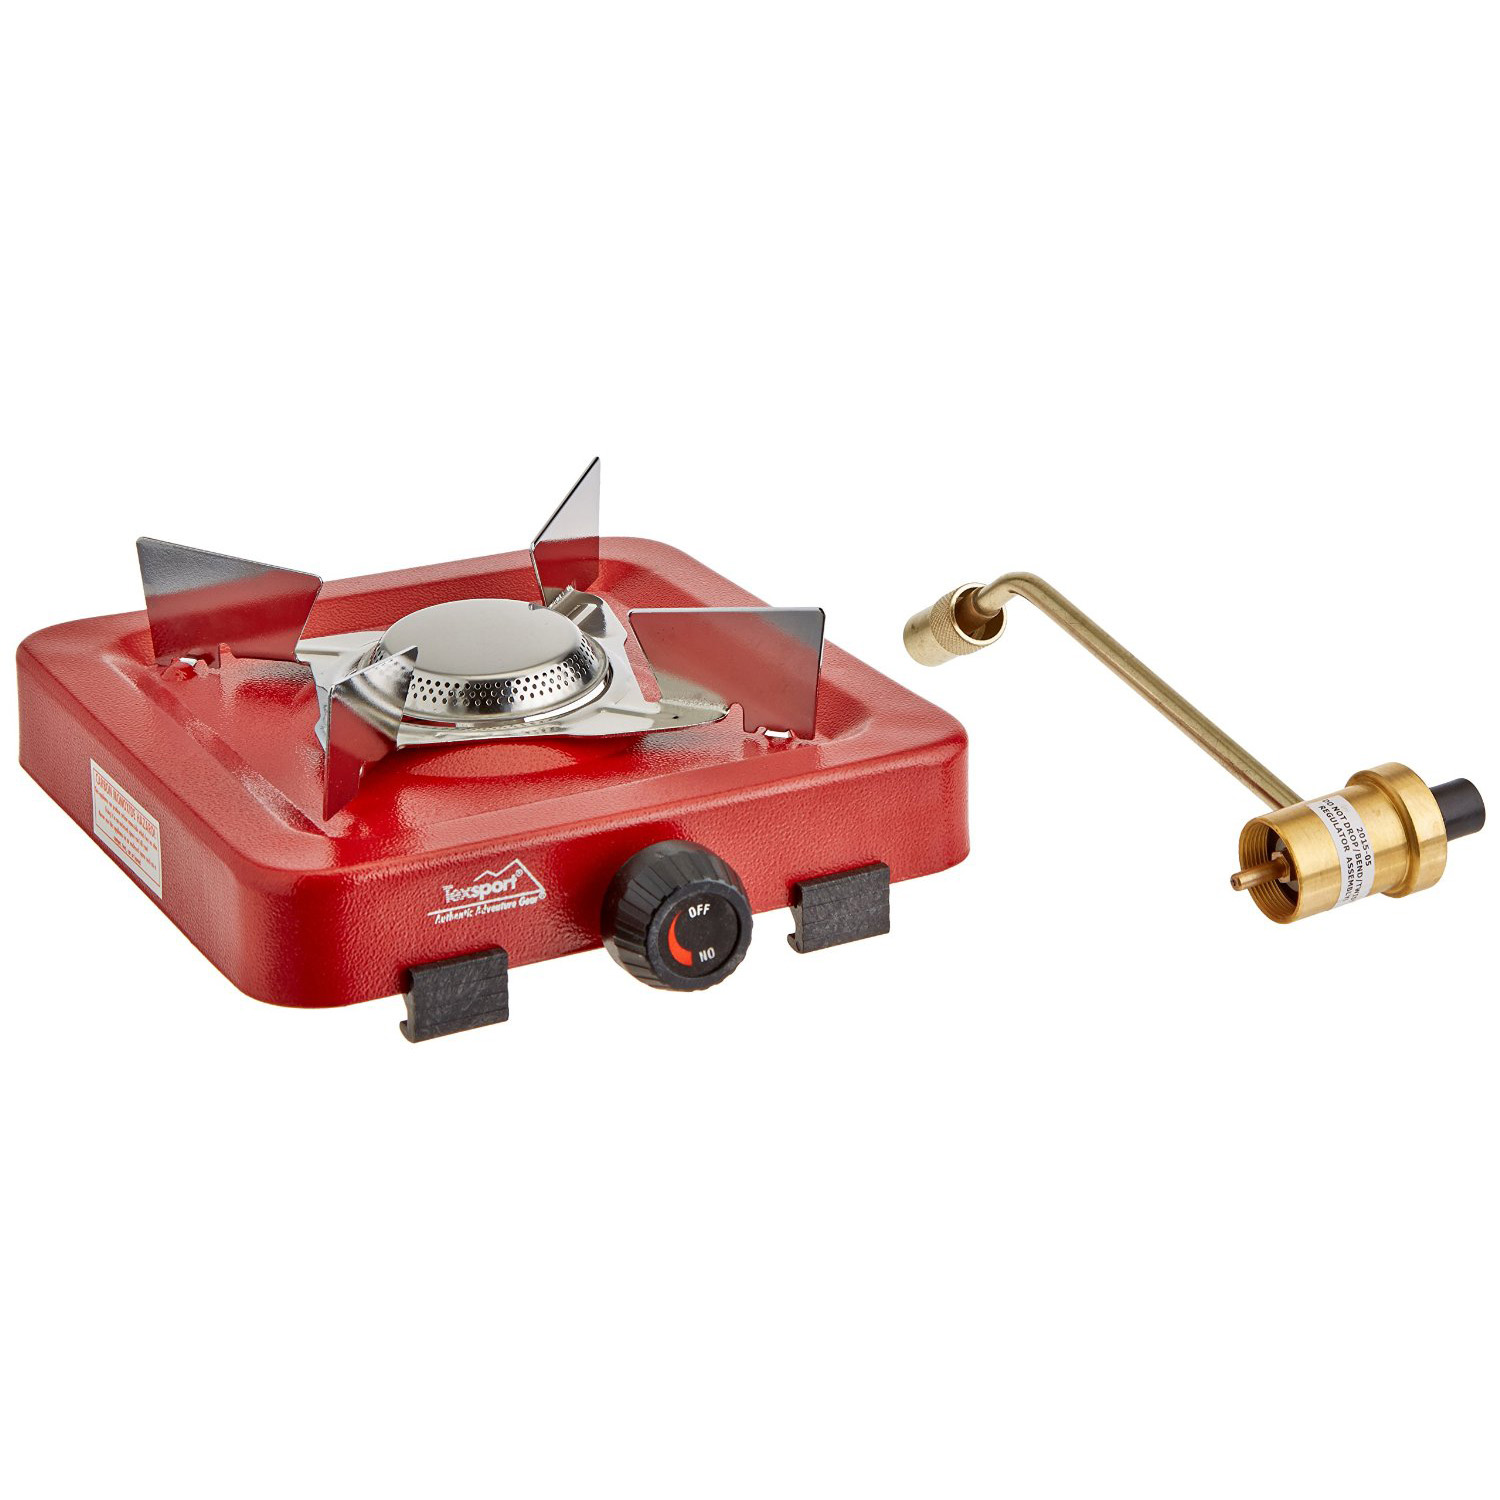 Texsport Single Burner Propane Camp Stove